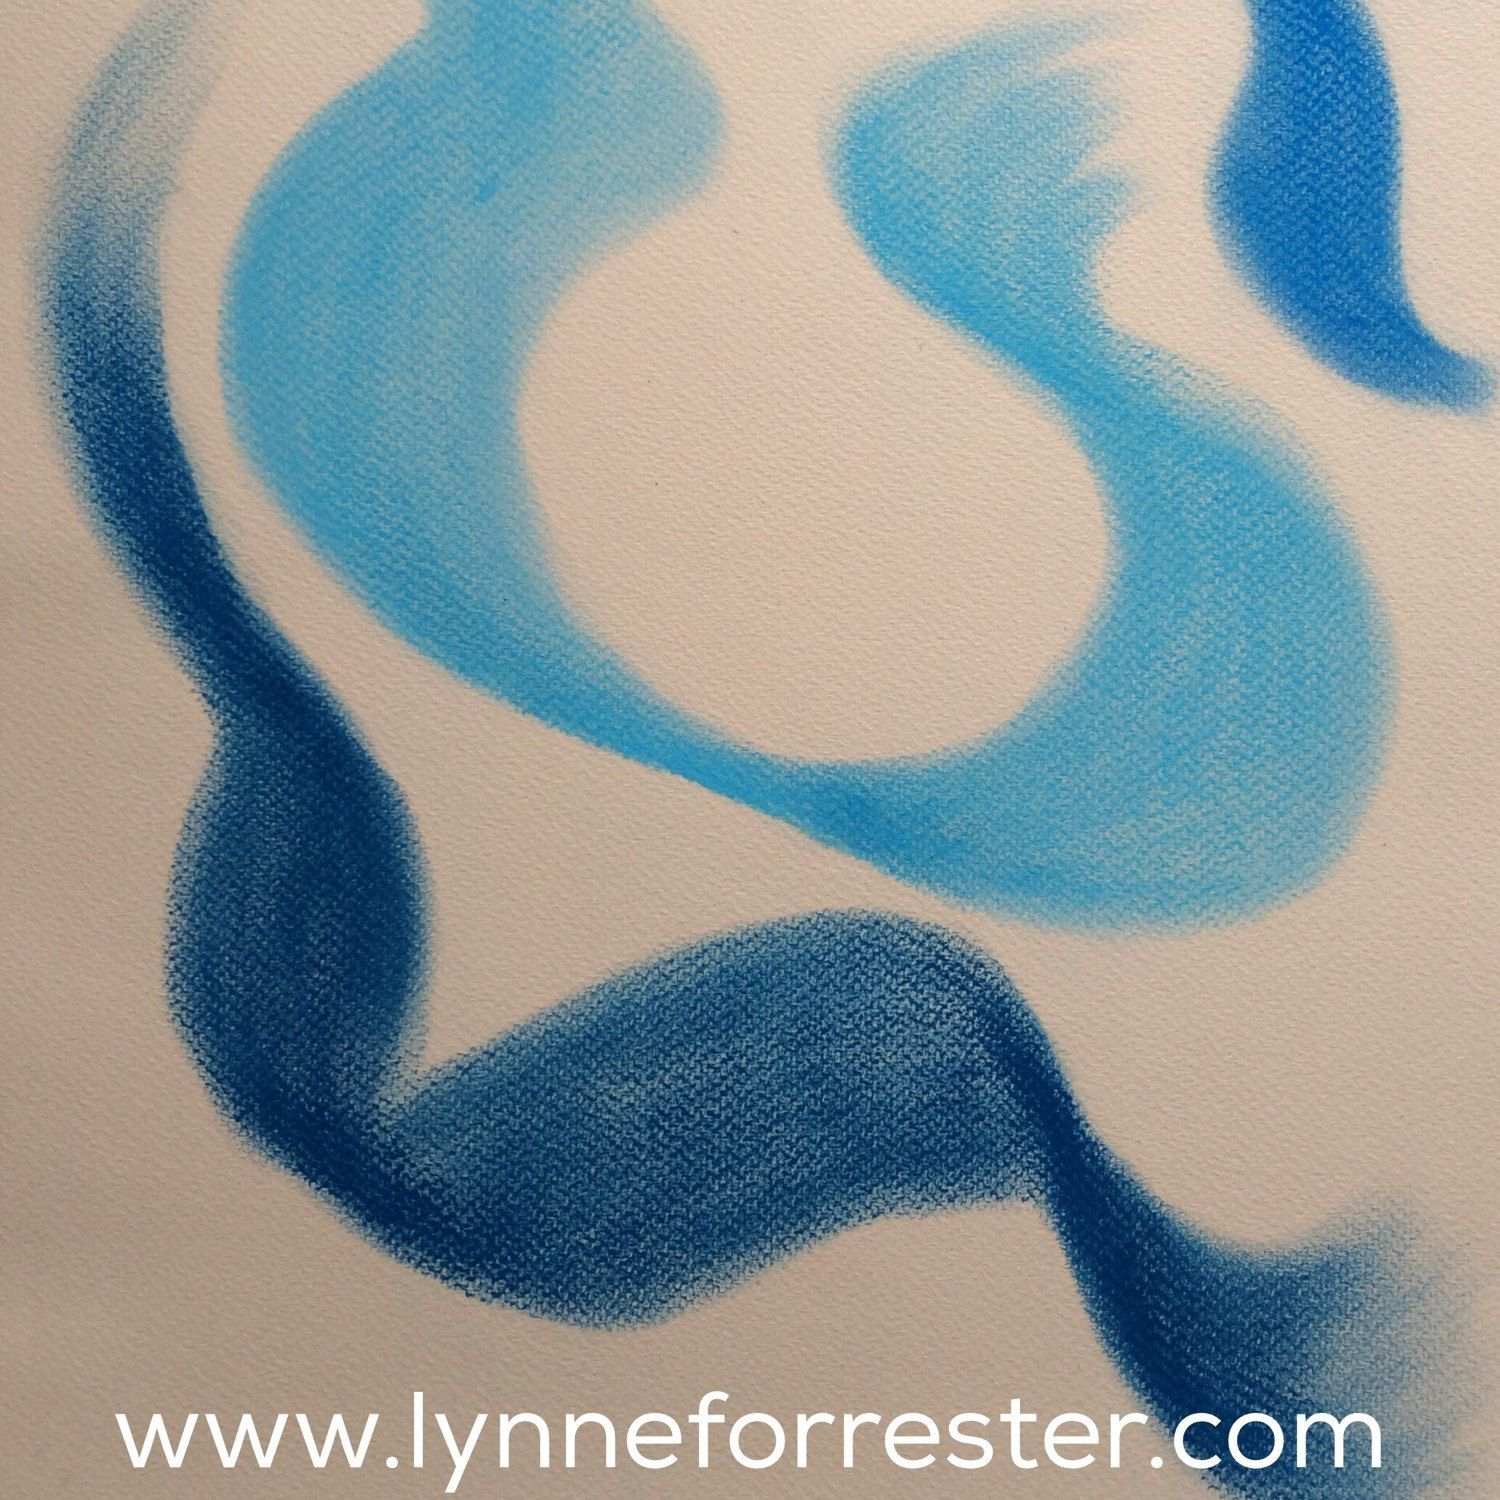 Flowing original pastel abstract art swirling abstract wall art